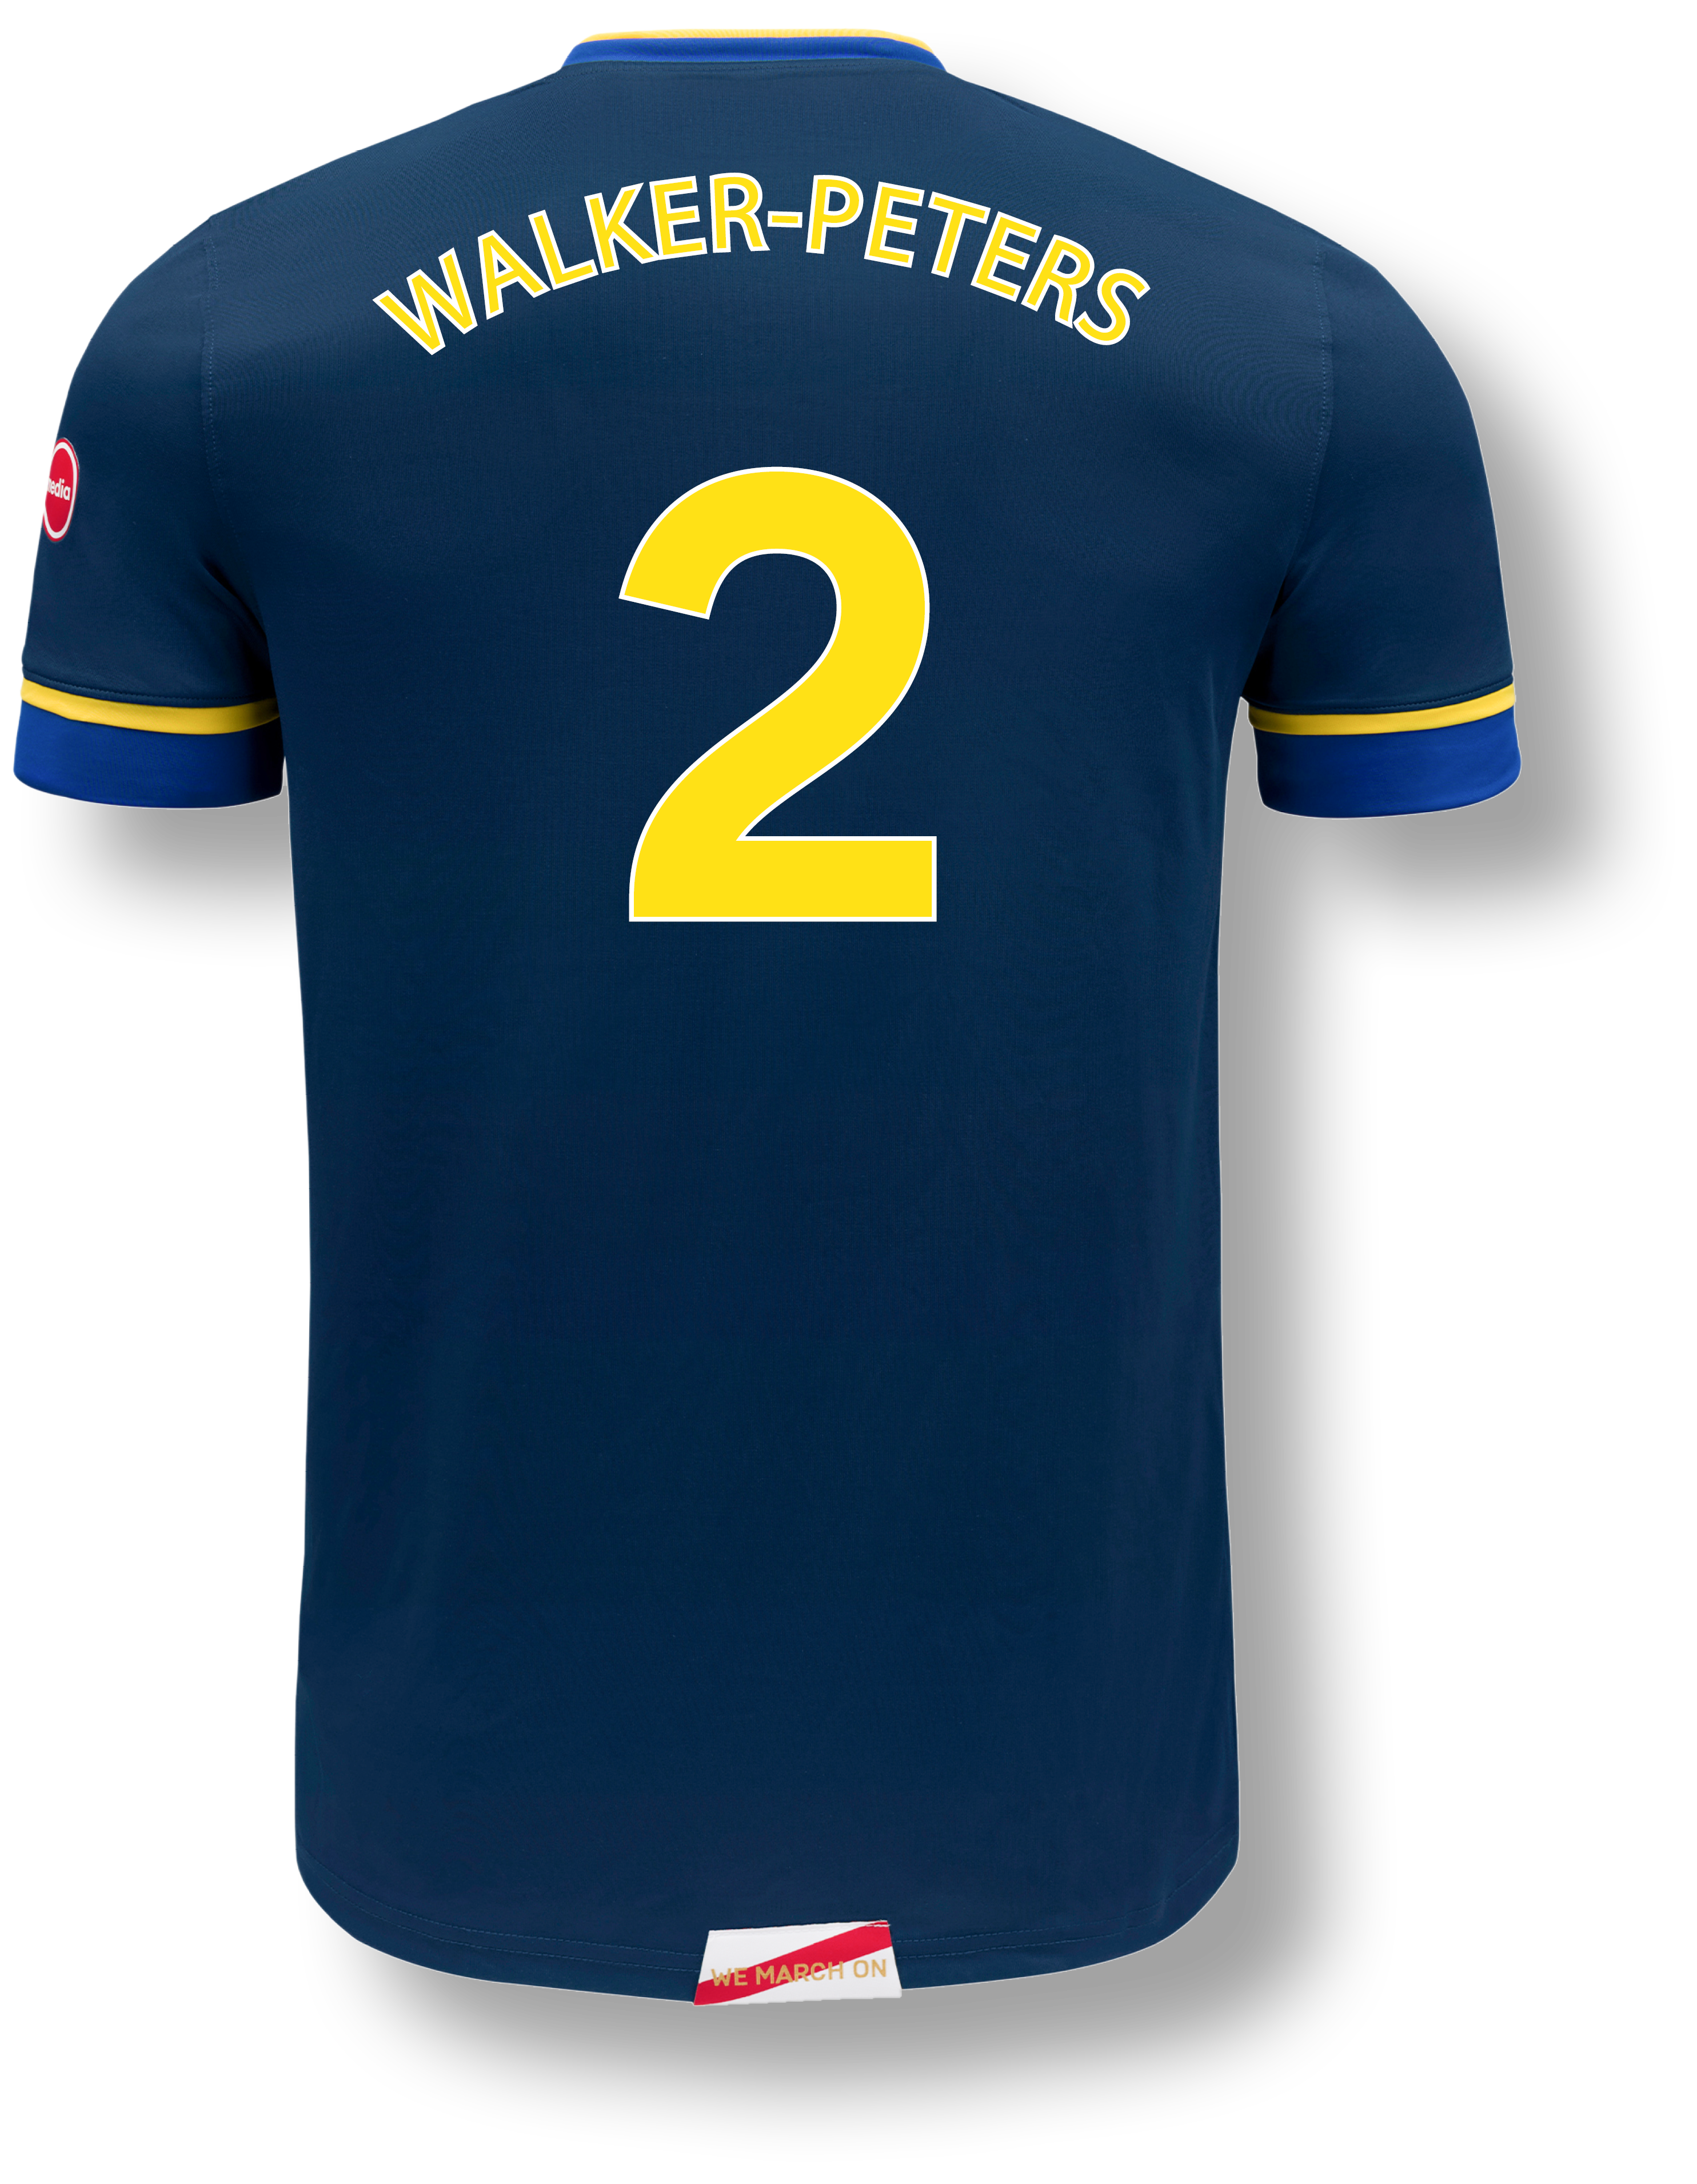 Back of Shirt Graphic - Away - Walker-Peters